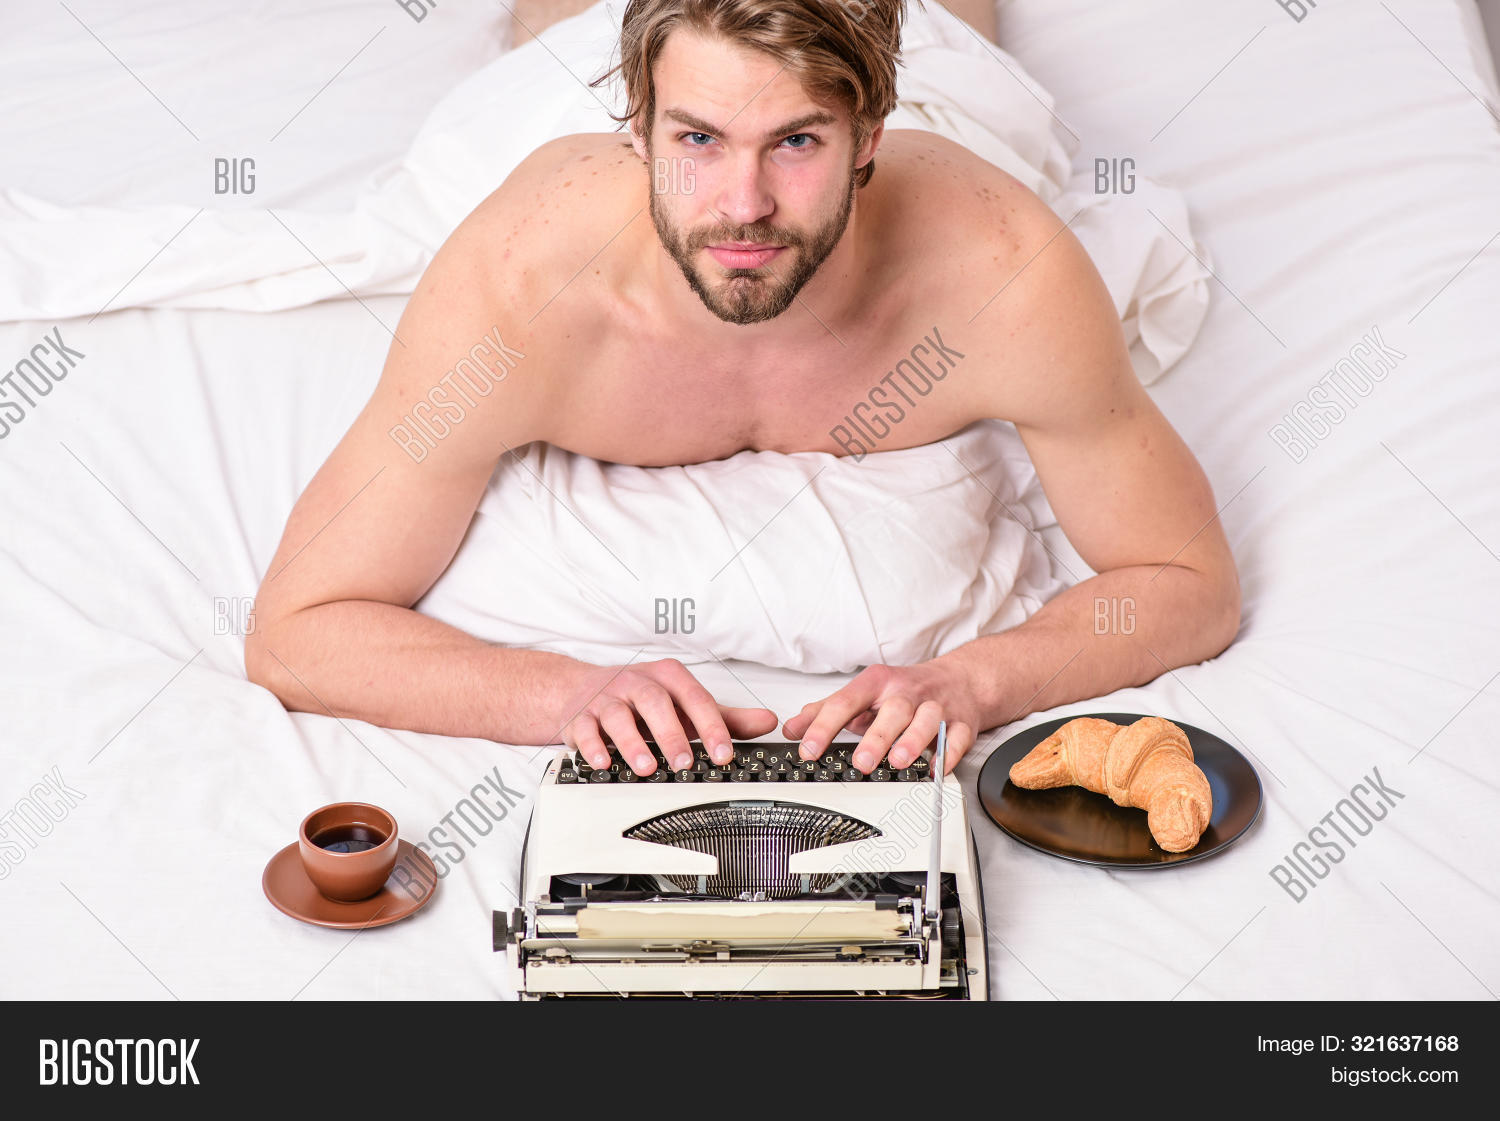 adult,attractive,author,awake,bearded,bed,bedroom,book,breakfast,bring,caucasian,chapter,coffee,concept,create,croissant,daily,enjoy,fashioned,fresh,guy,handsome,hipster,idea,inspiration,lay,leisure,literature,man,manual,morning,novelist,old,relax,retro,routine,typewriter,used,vintage,work,working,write,writer